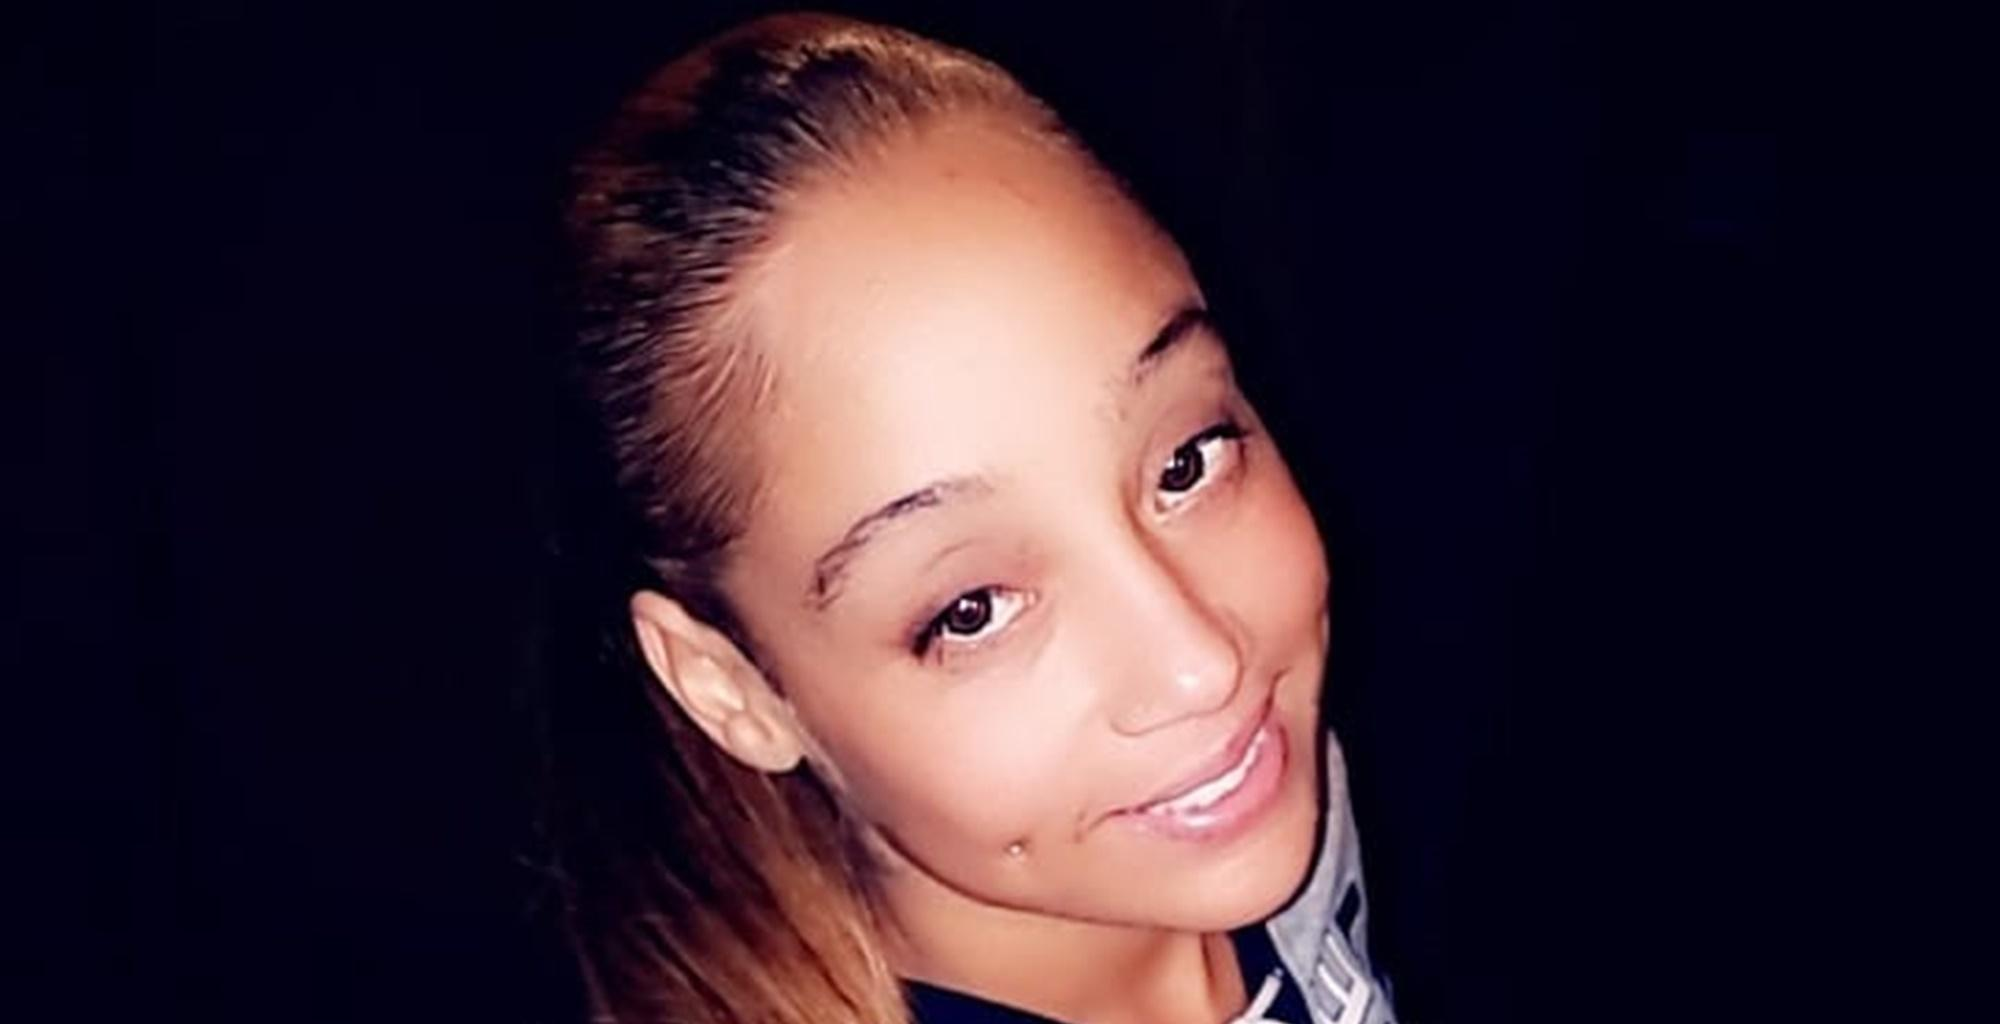 Nipsey Hussle's Sister, Samantha Smith, Reacts After Court Gave Her Custody Of His Daughter, Emani Asghedom Over Her Mother, Tanisha Foster AKA Chyna Hussle